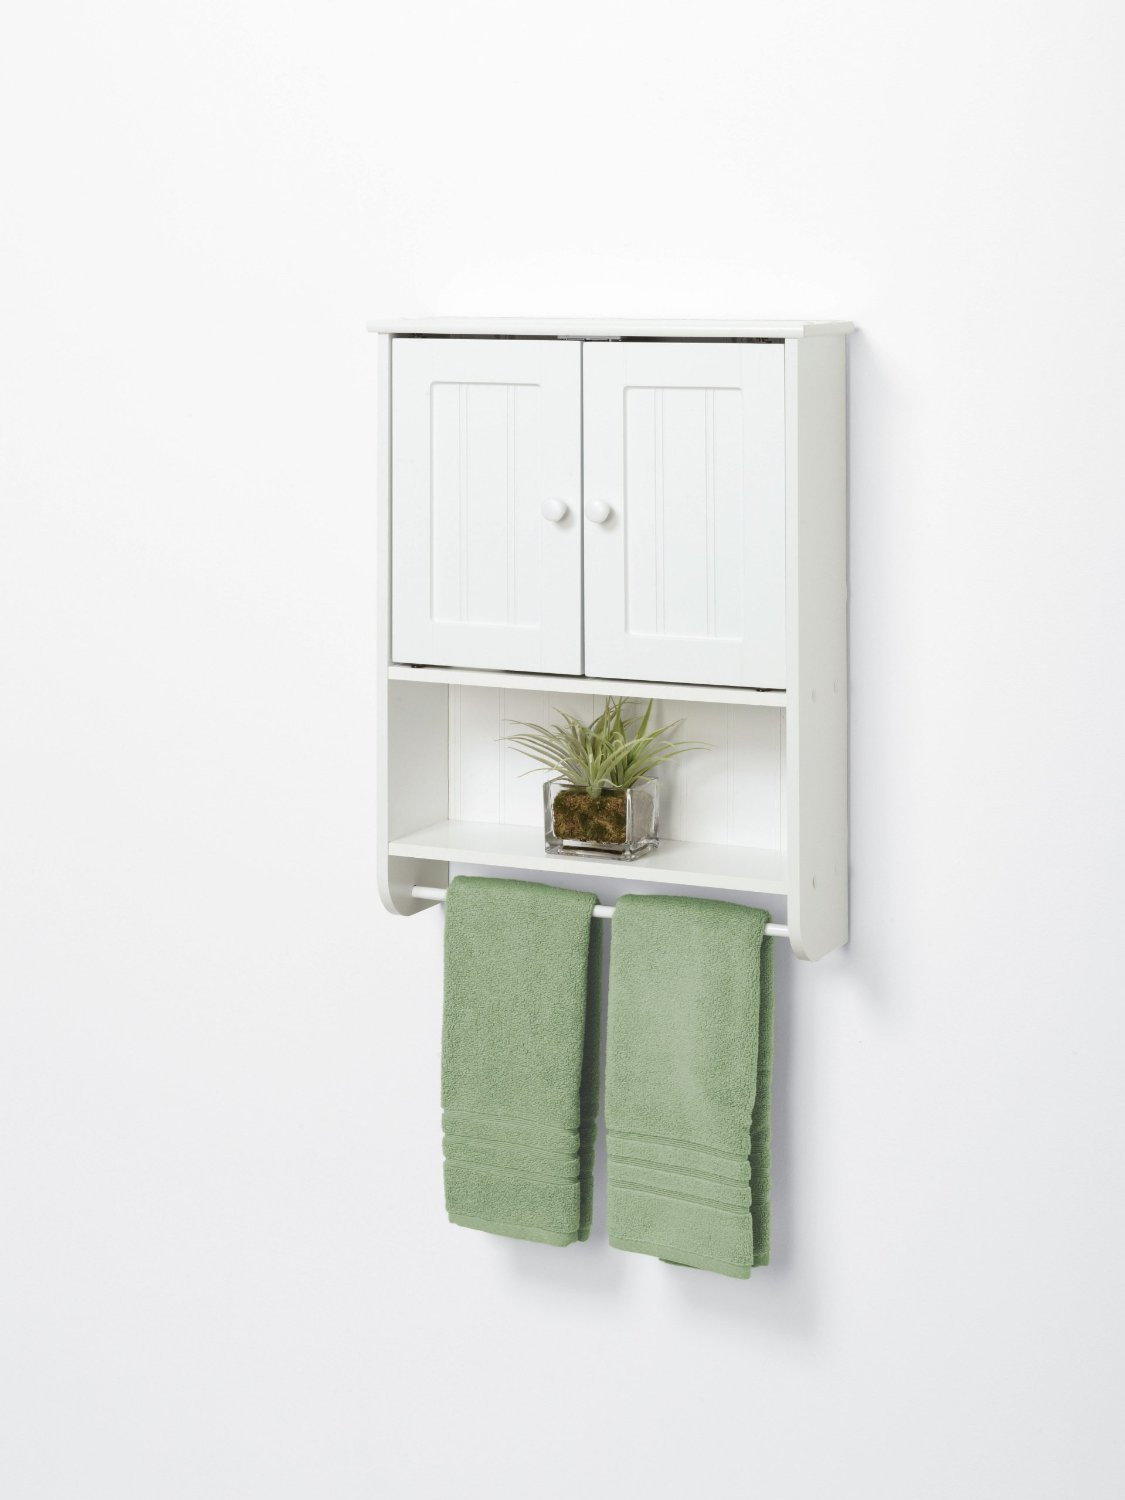 Bathroom Wall Cabinet For Towels With Towel Bars And Shelf And Double